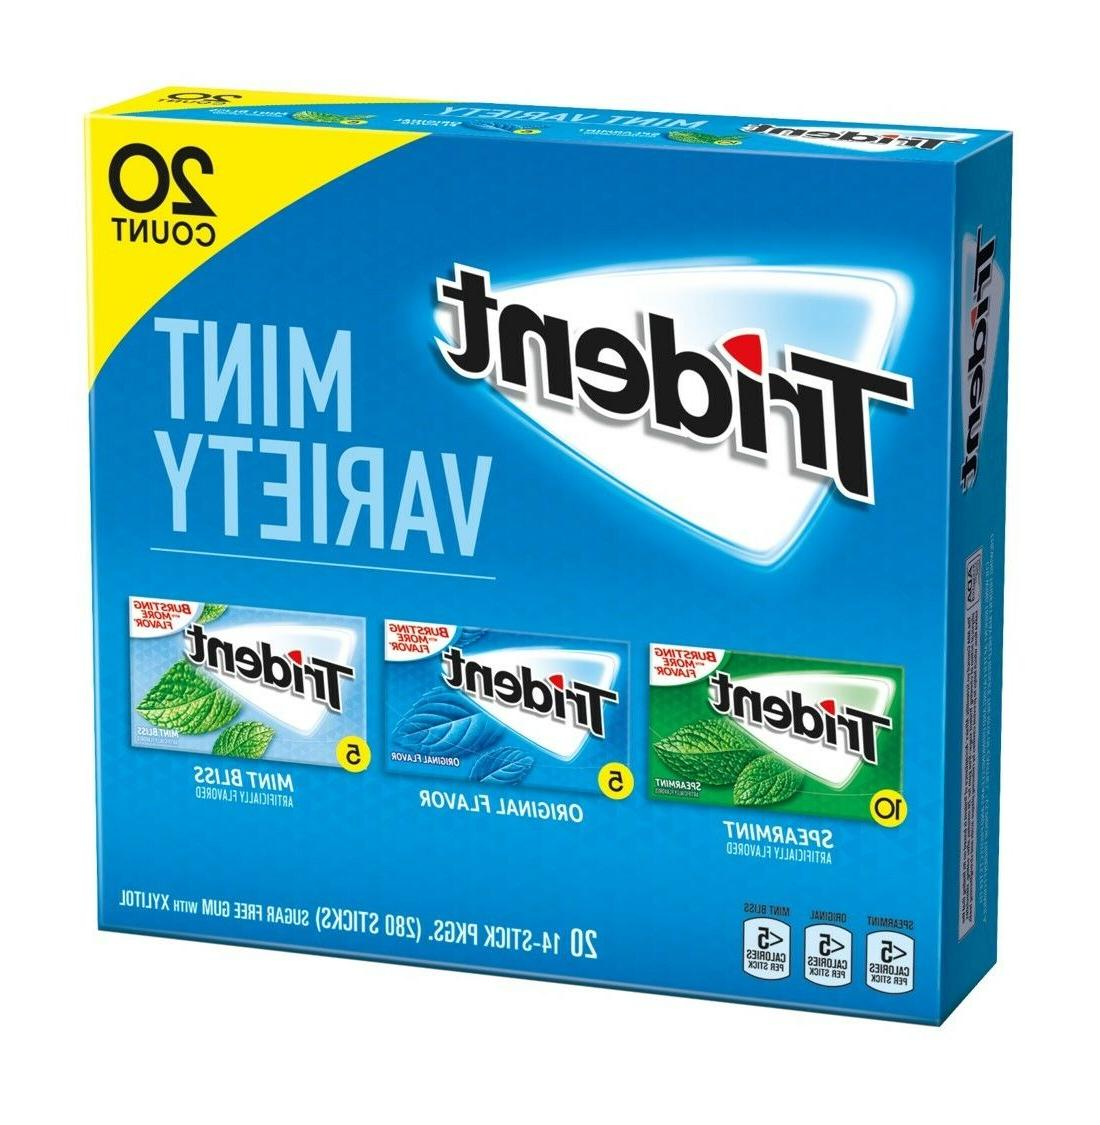 Trident Sugar-Free Gum Mint Variety Pack 20 Count - GUARANTE